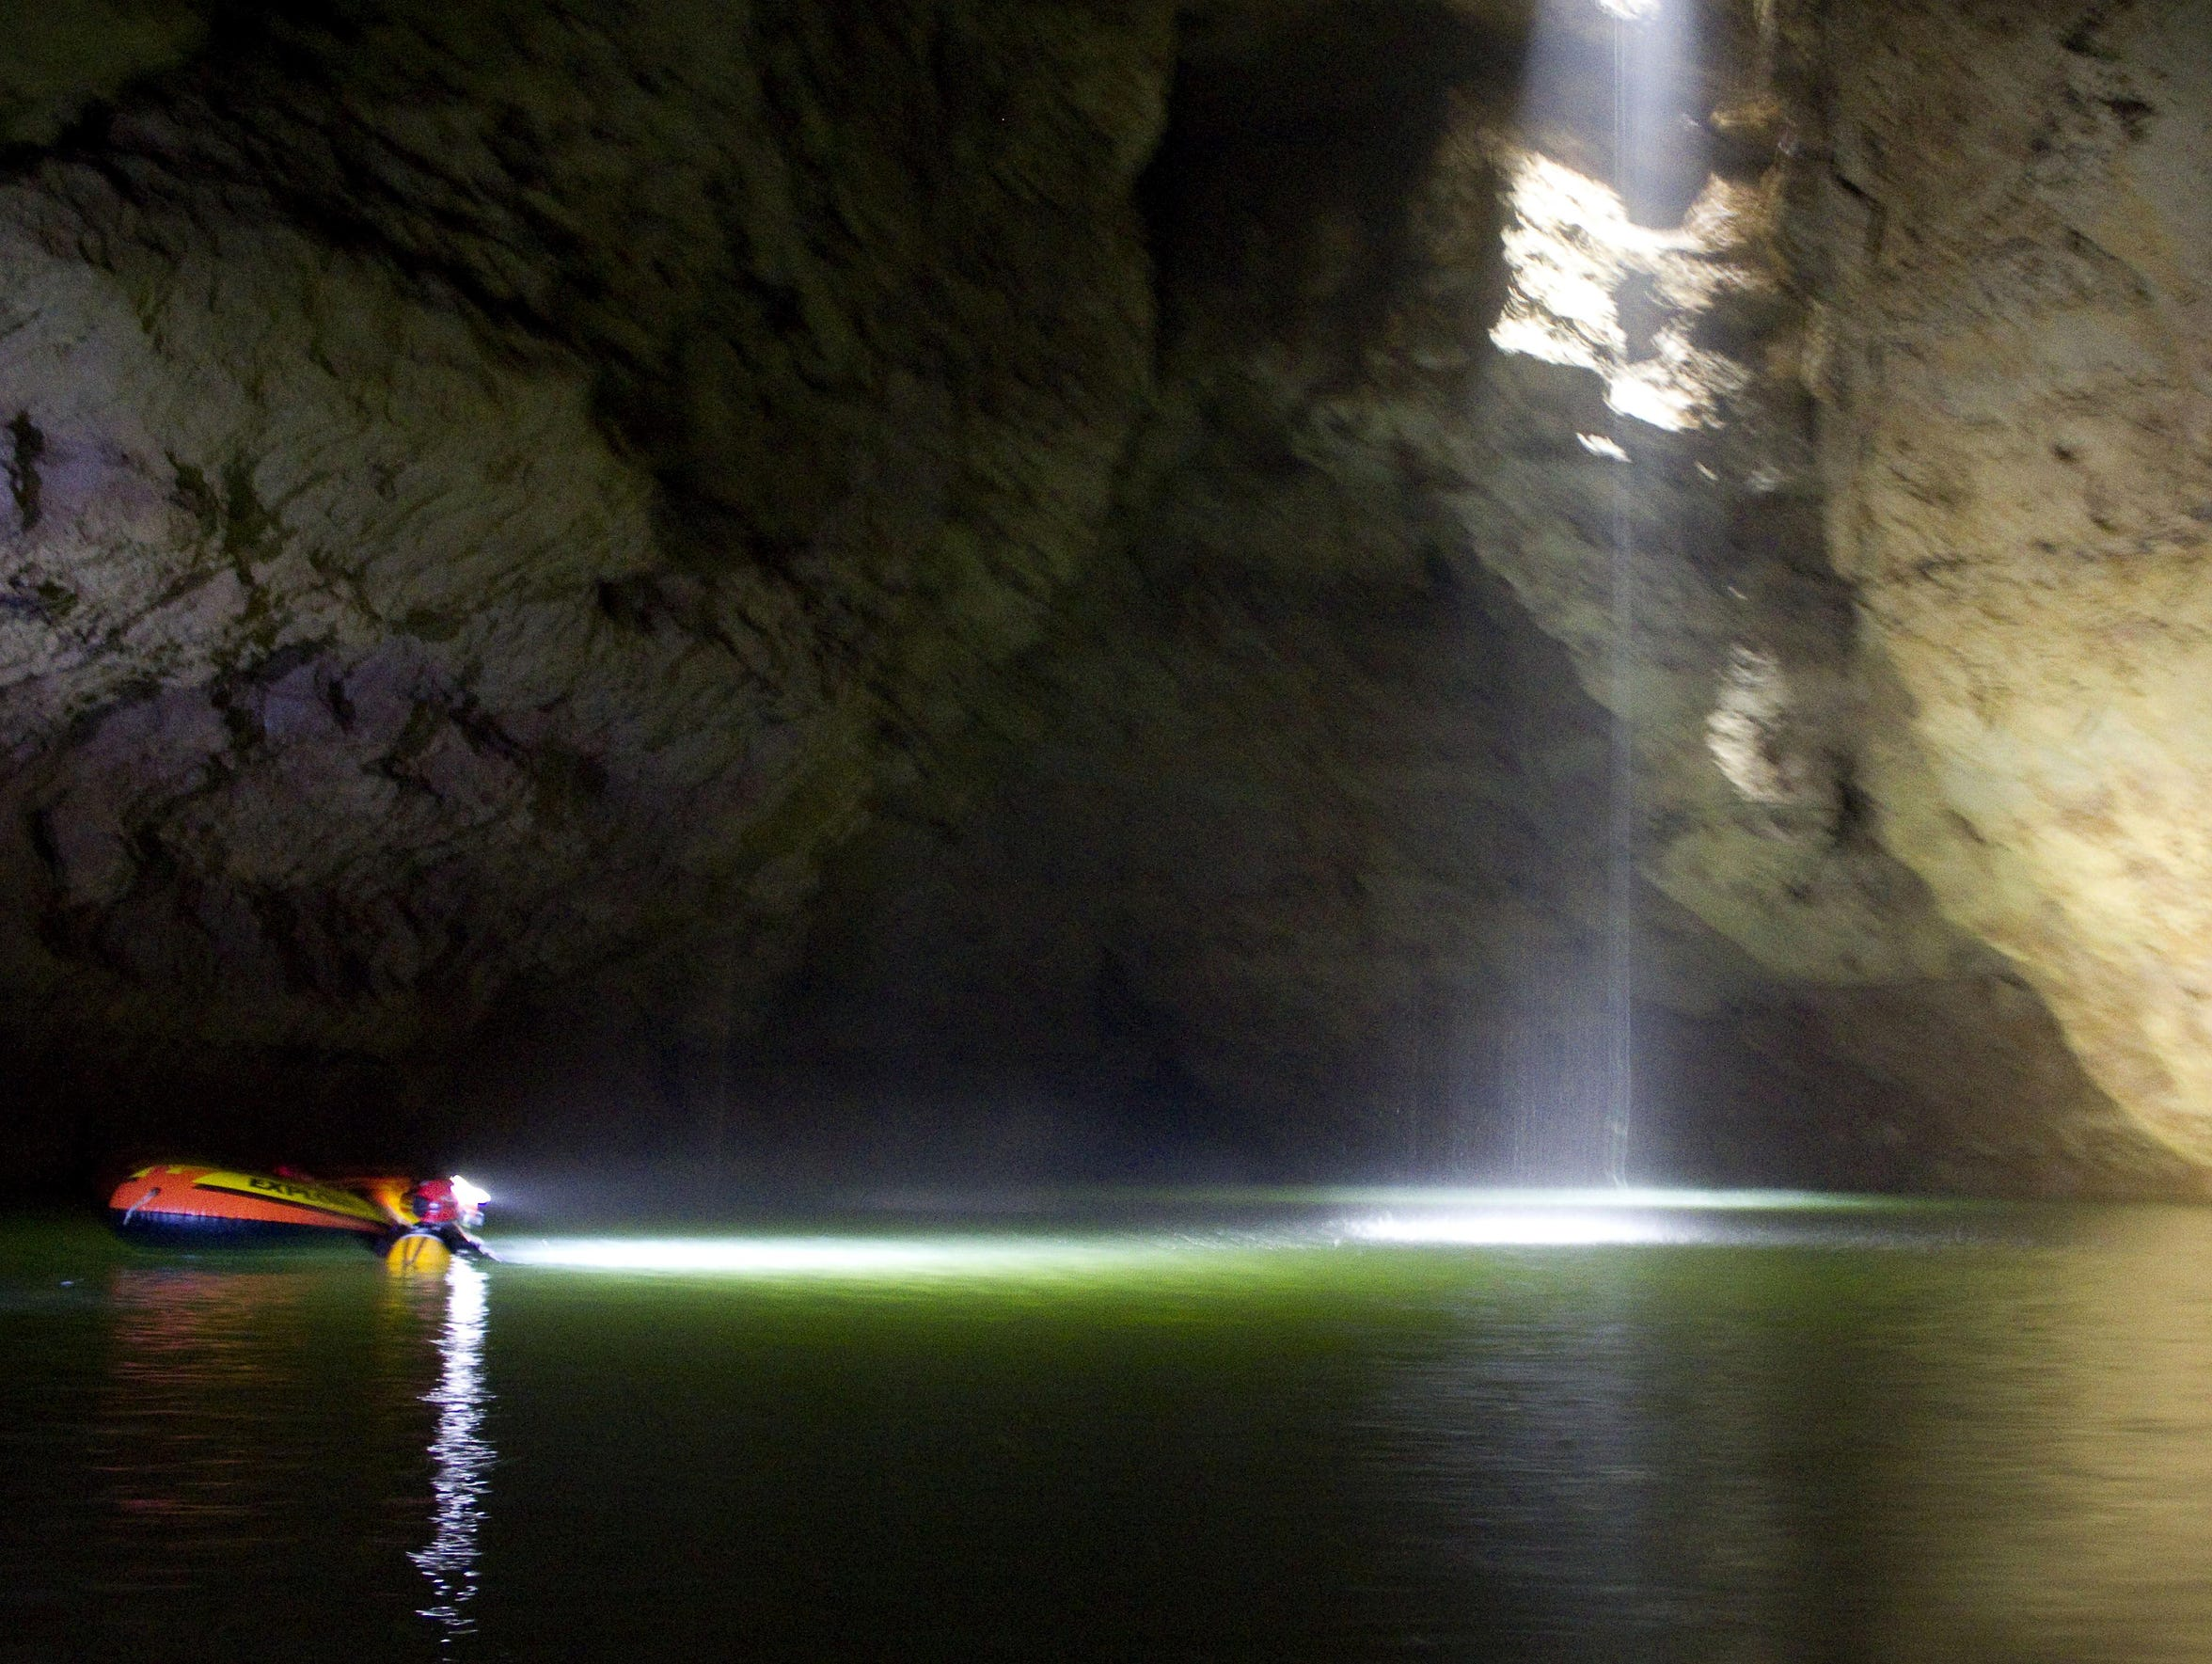 A small waterfall showered the cave explorers while